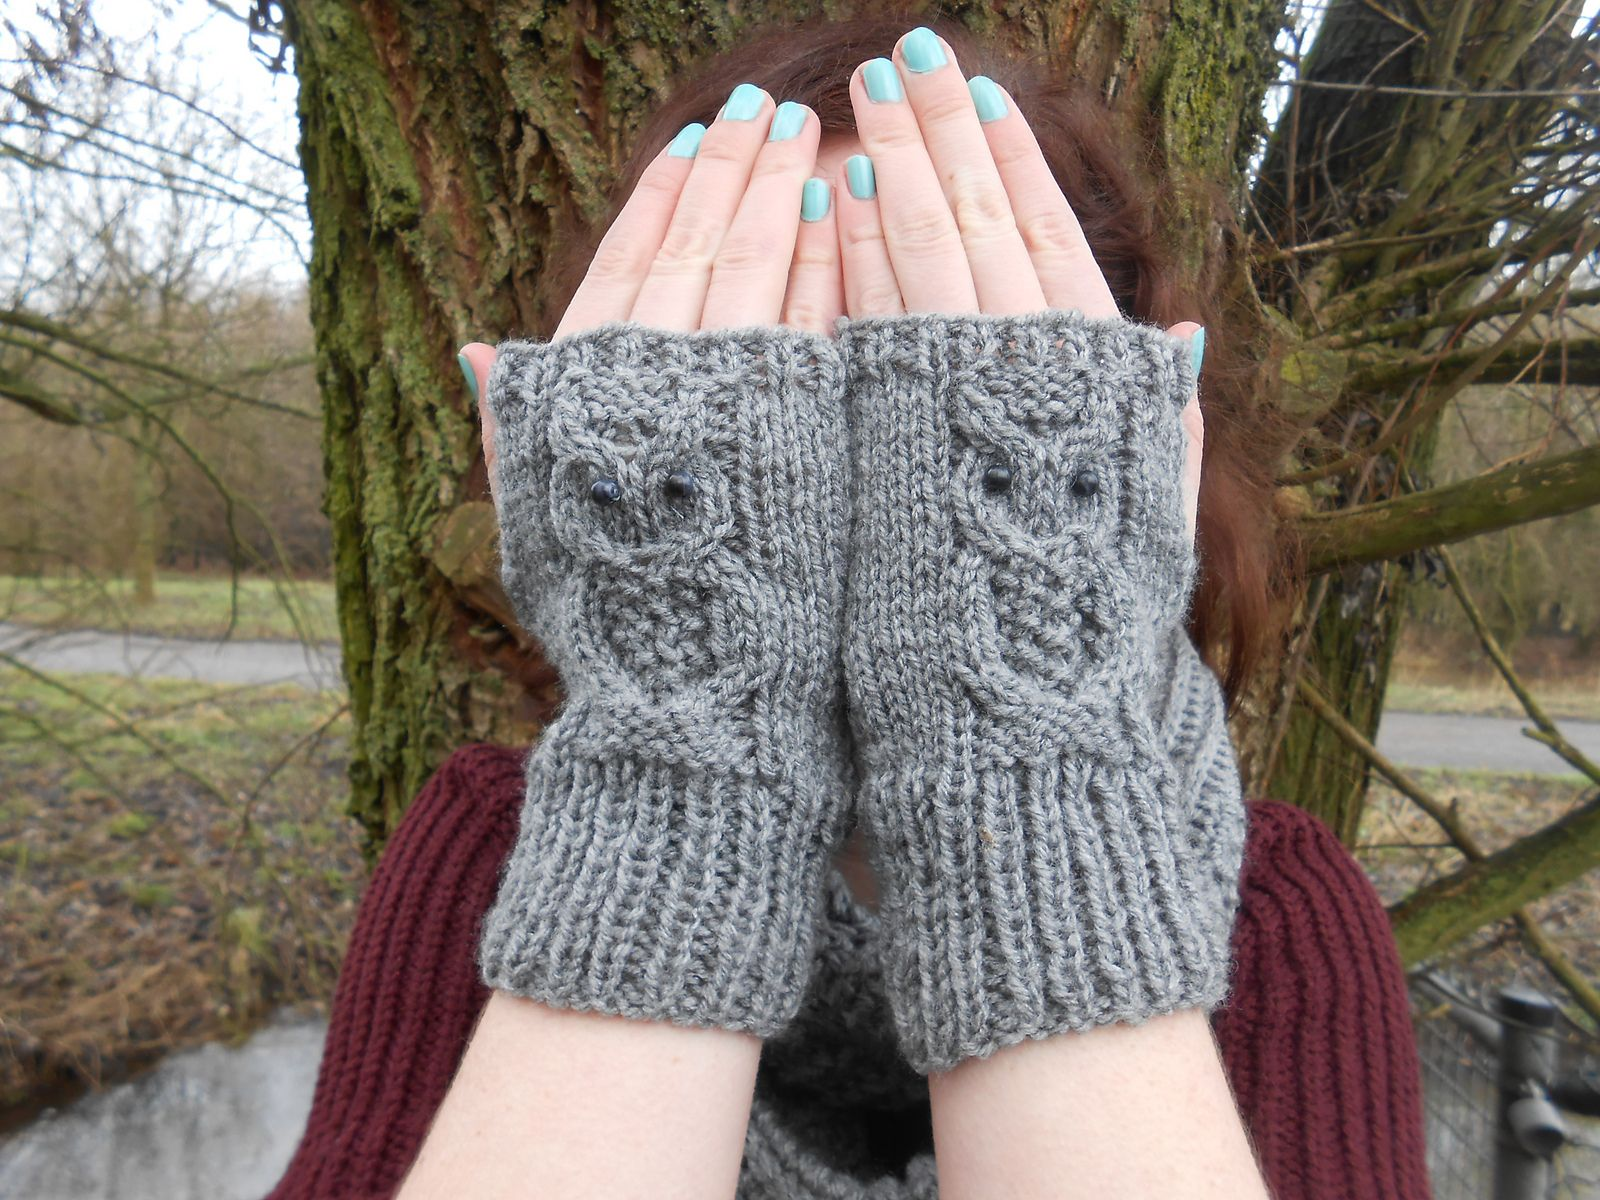 Ravelry owl mitts by amanda jones knitting patterns pinterest this is a beautiful quick pattern owl design cabled into the knitting use a cotton yarn or other yarn with a clear stitch definition bankloansurffo Choice Image